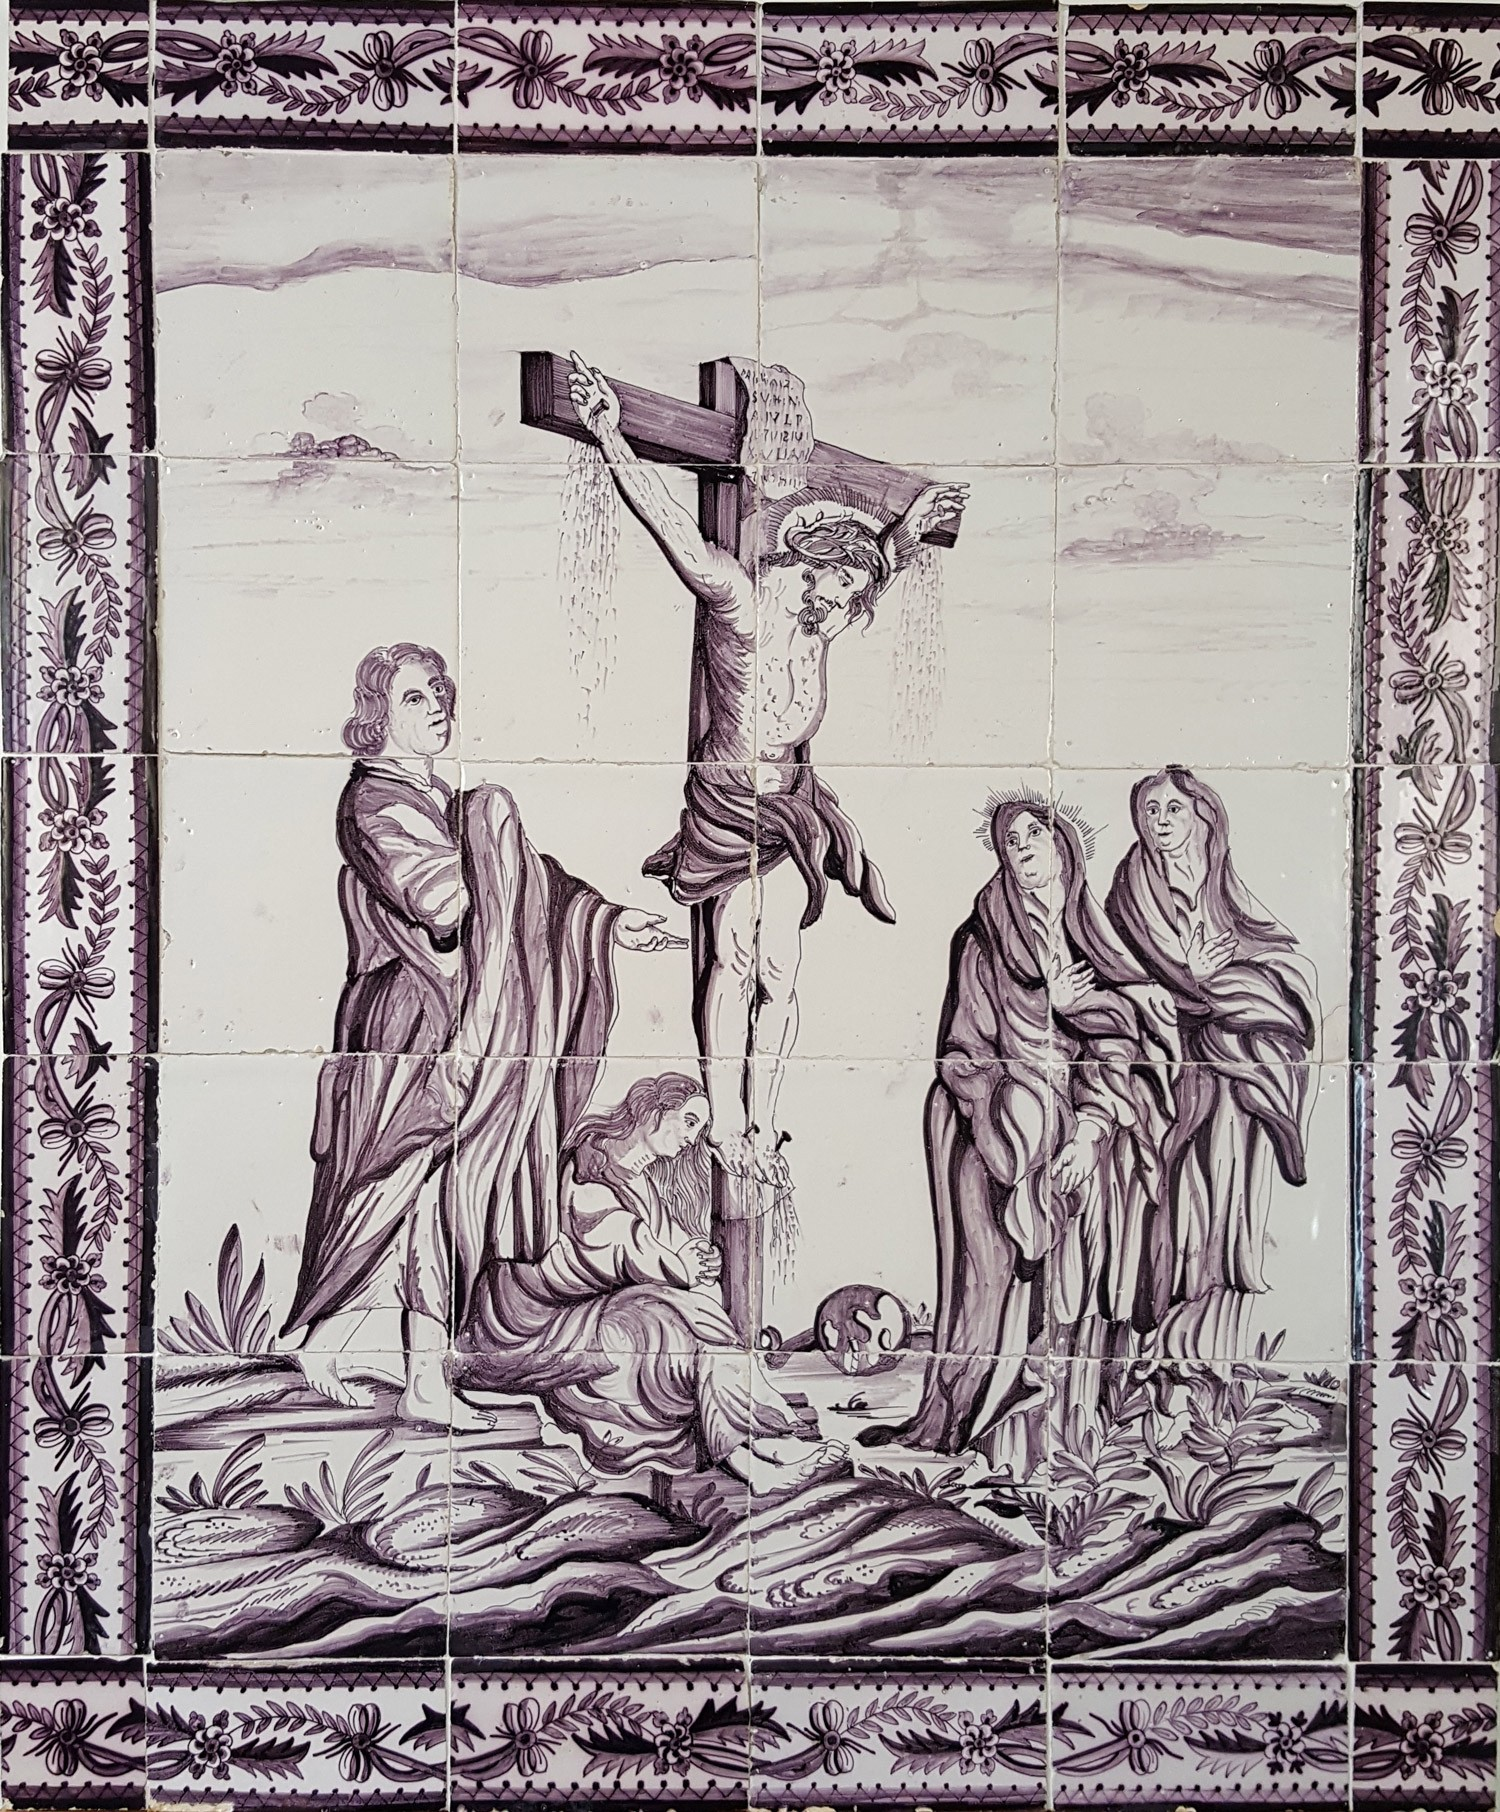 antique dutch tile mural with the crucifixion of jesus 18th